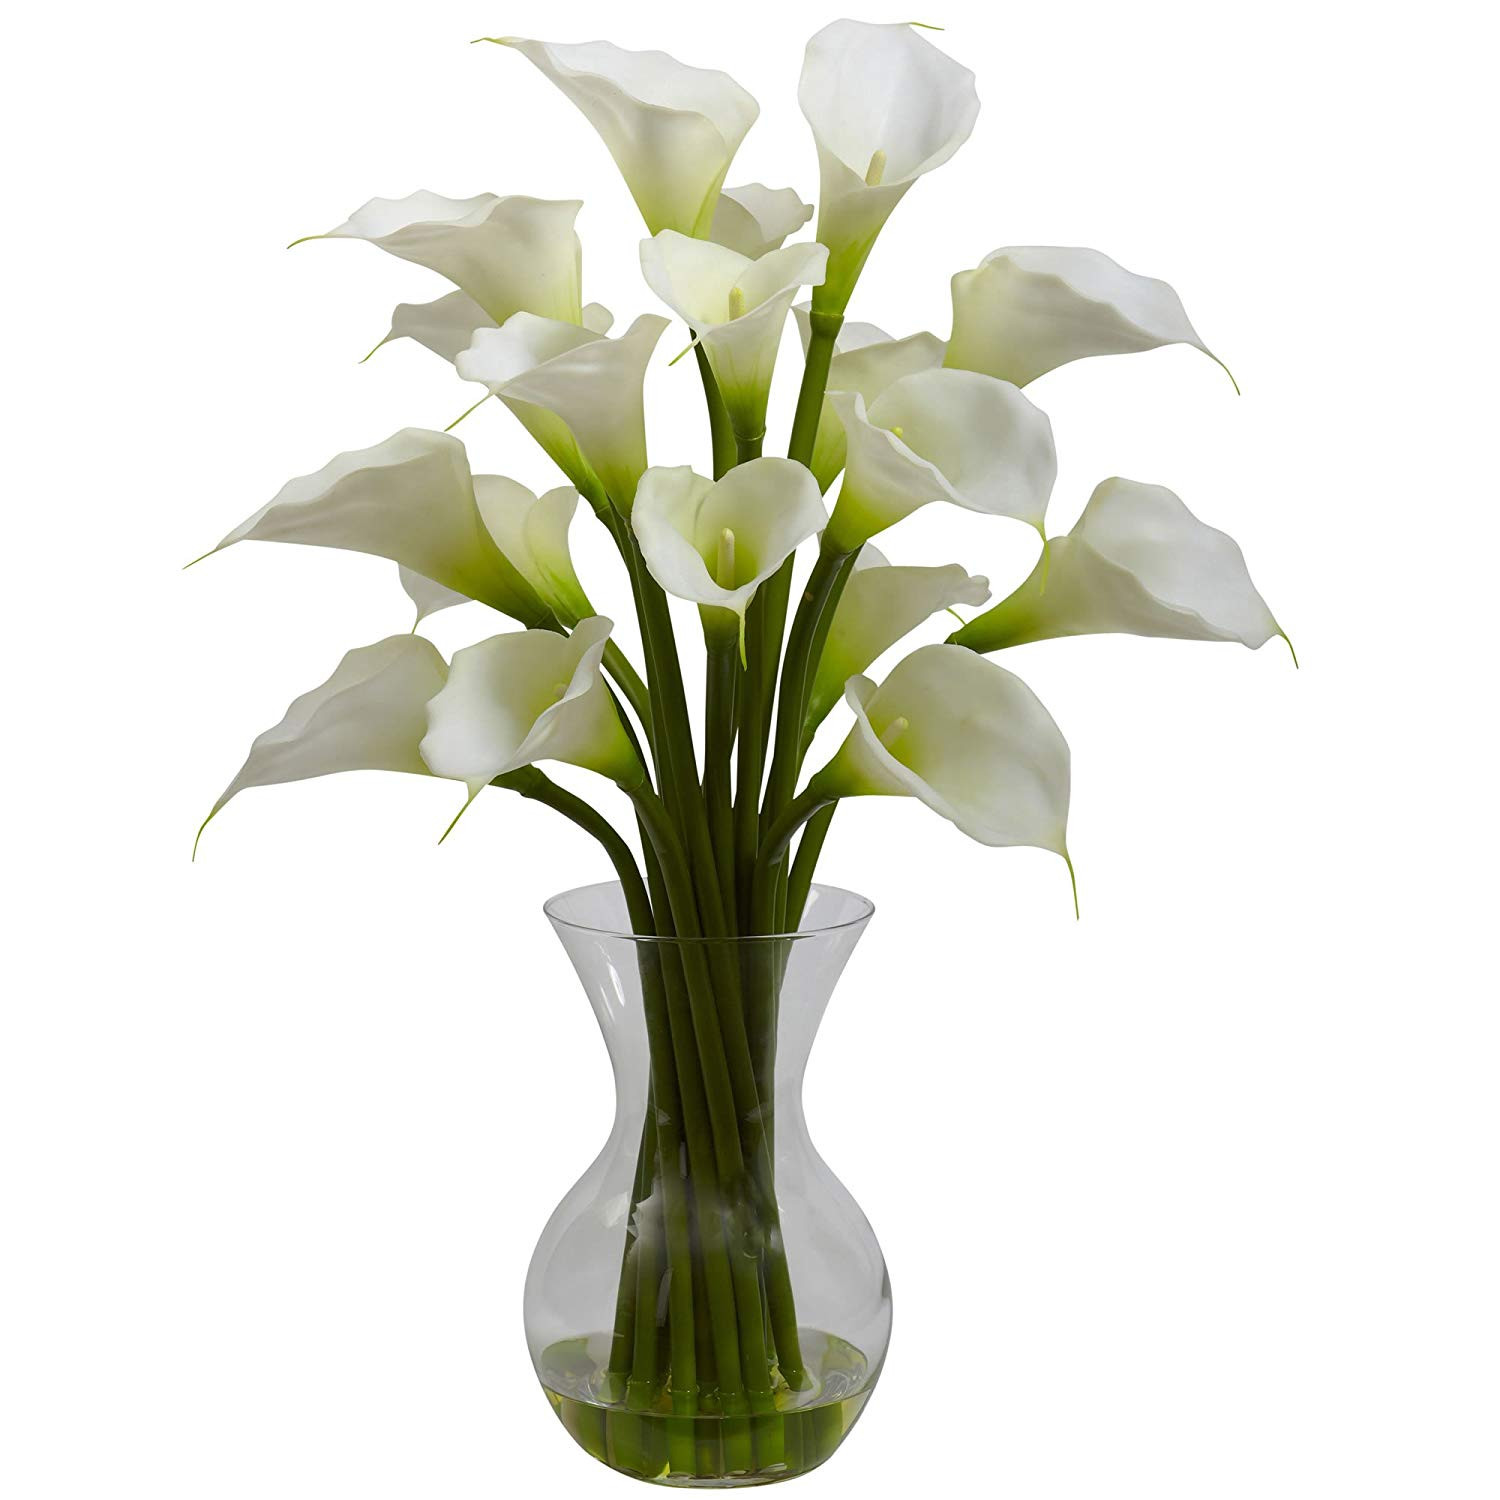 large pink floor vase of amazon com nearly natural 1299 cr galla calla lily with vase for amazon com nearly natural 1299 cr galla calla lily with vase arrangement cream home kitchen